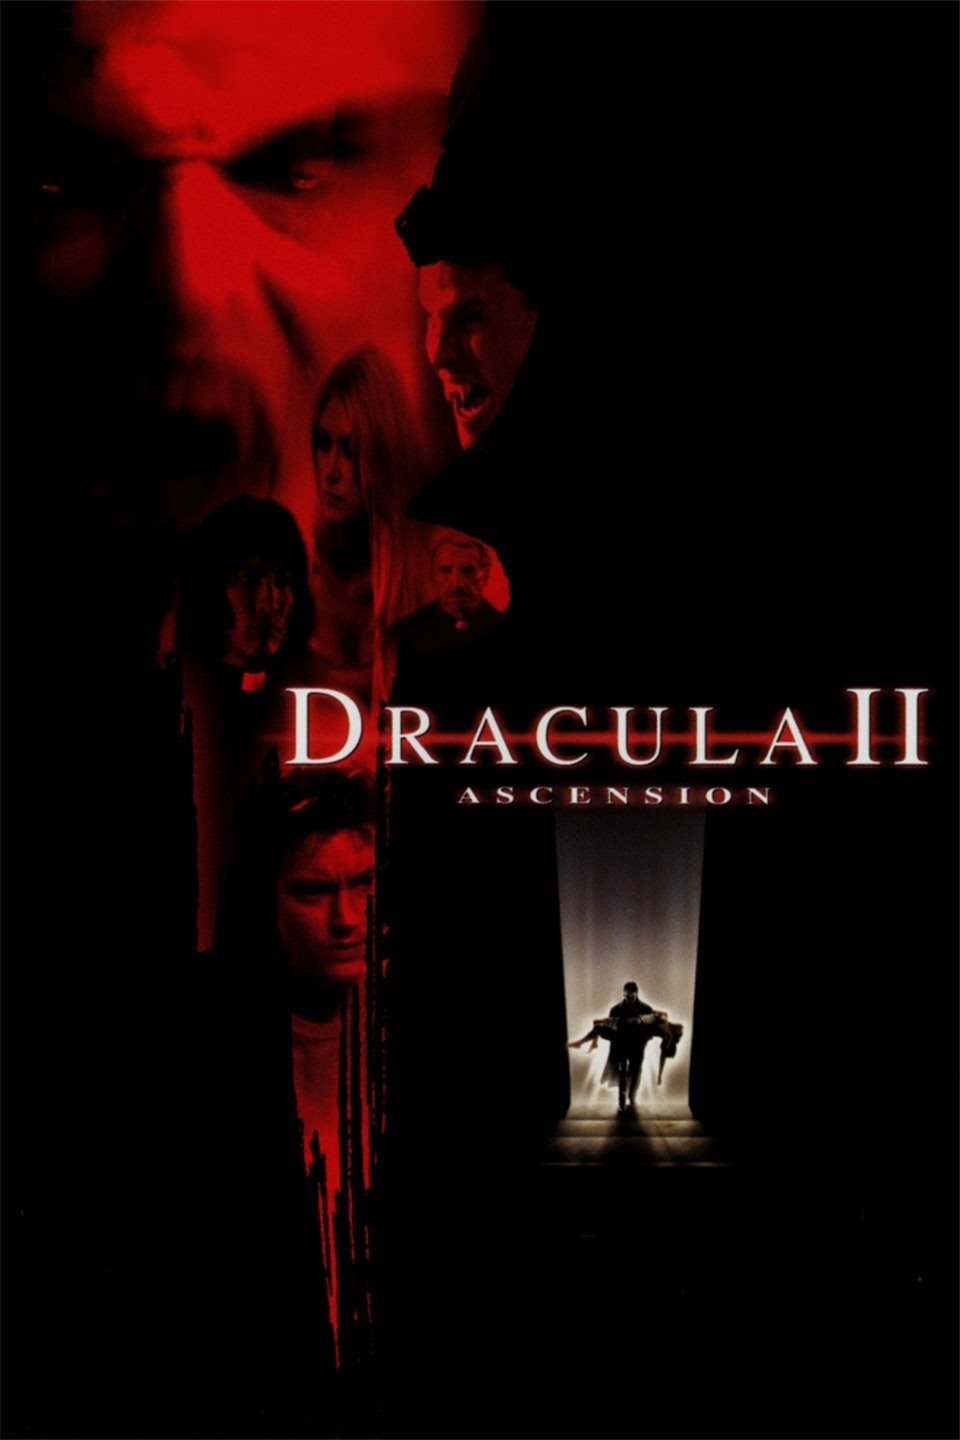 Dracula II Ascension 2003 Hindi Dual Audio 1080p BluRay ESubs 1.25GB Download